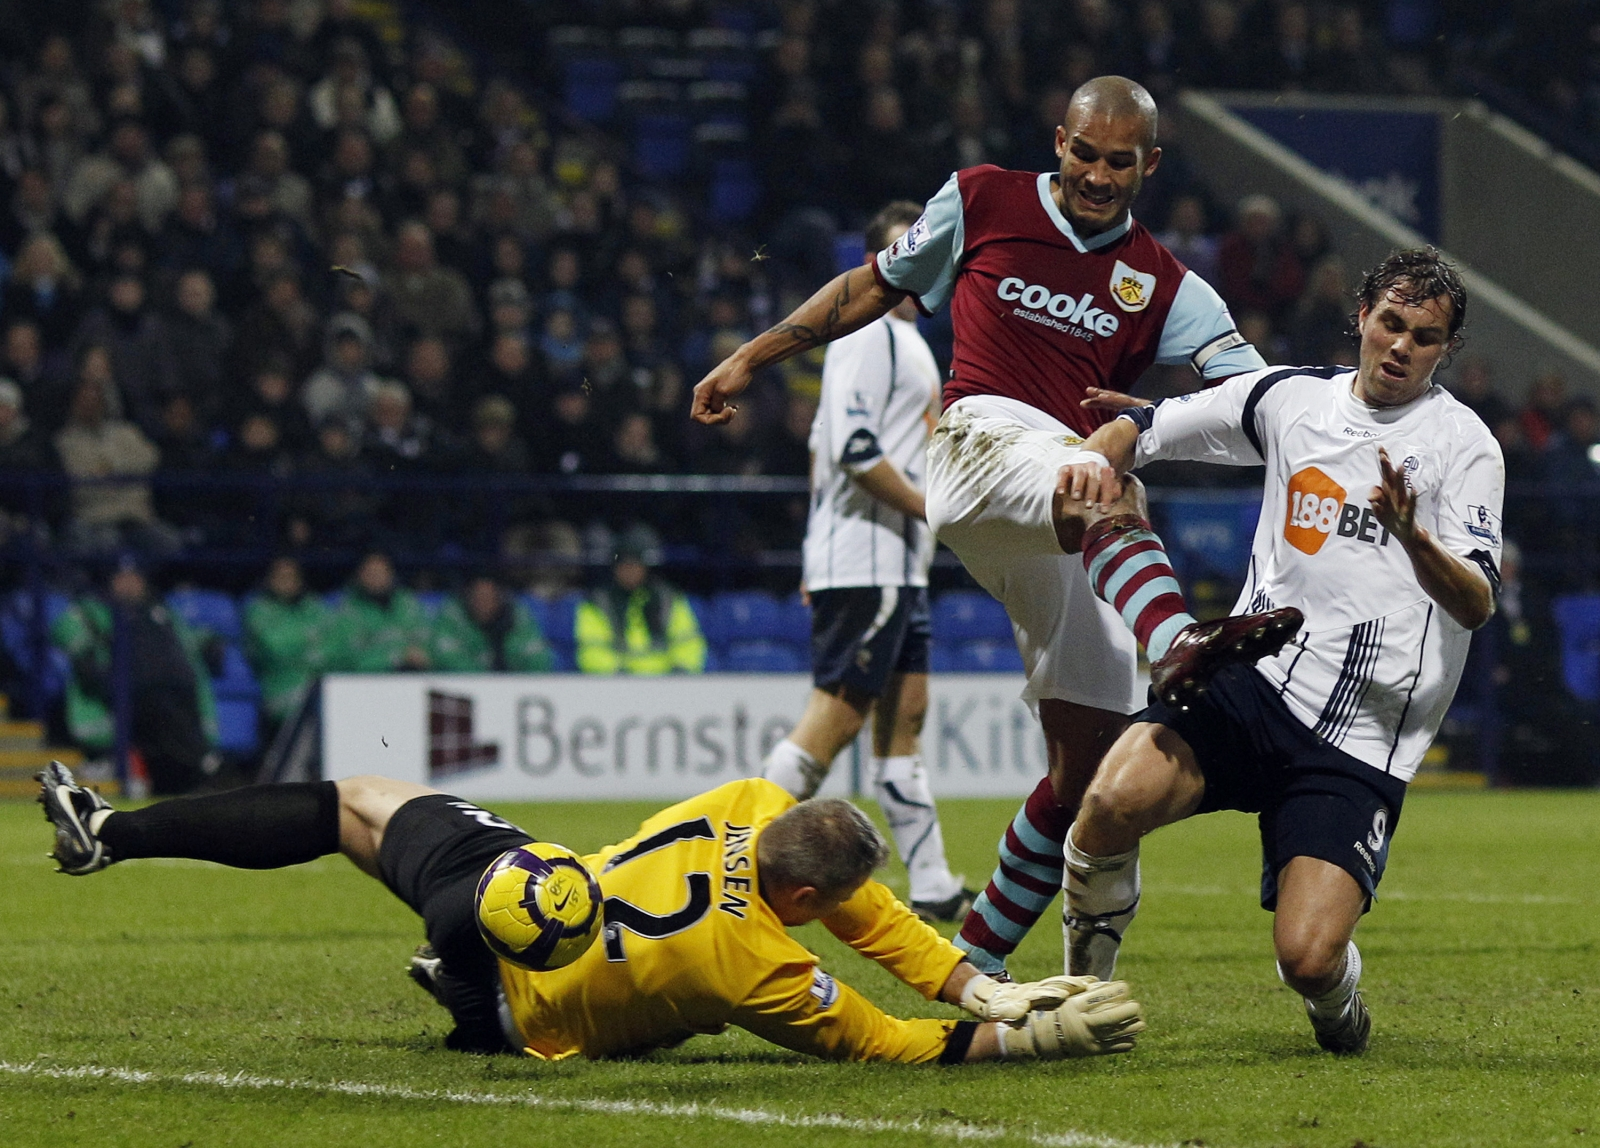 Bolton Wanderers' Johan Elmander is challenged by Burnley's Brian Jensen (L) and Clark Carlisle (C) during their English Premier League soccer match at the Reebok stadium in Bolton